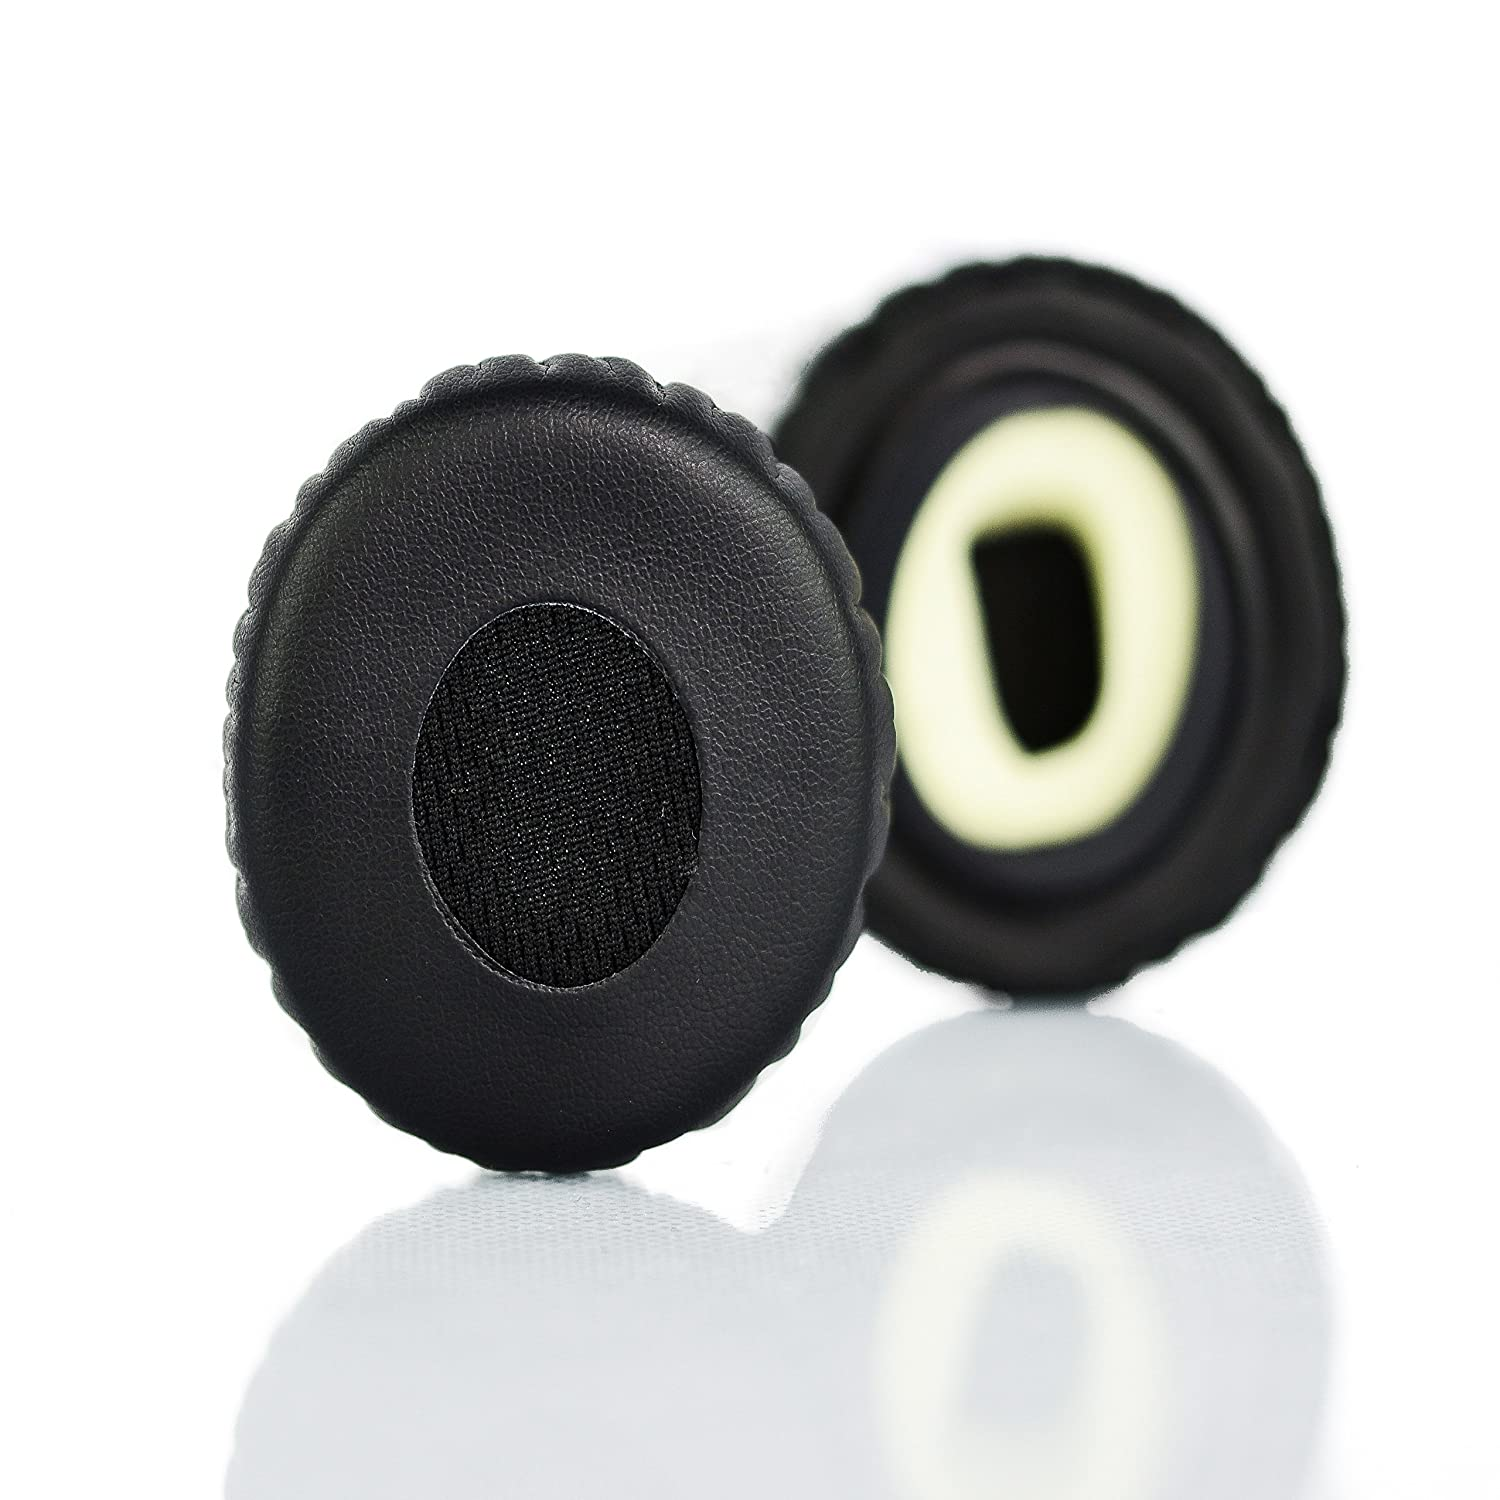 Replacement ear cushions for Bose On-Ear 2 (OE2) and SoundTrue On-Ear (OE) headphones (Not compatible with Bose QC3/OE headphones) Accessory House OE2 and SoundTrue OE